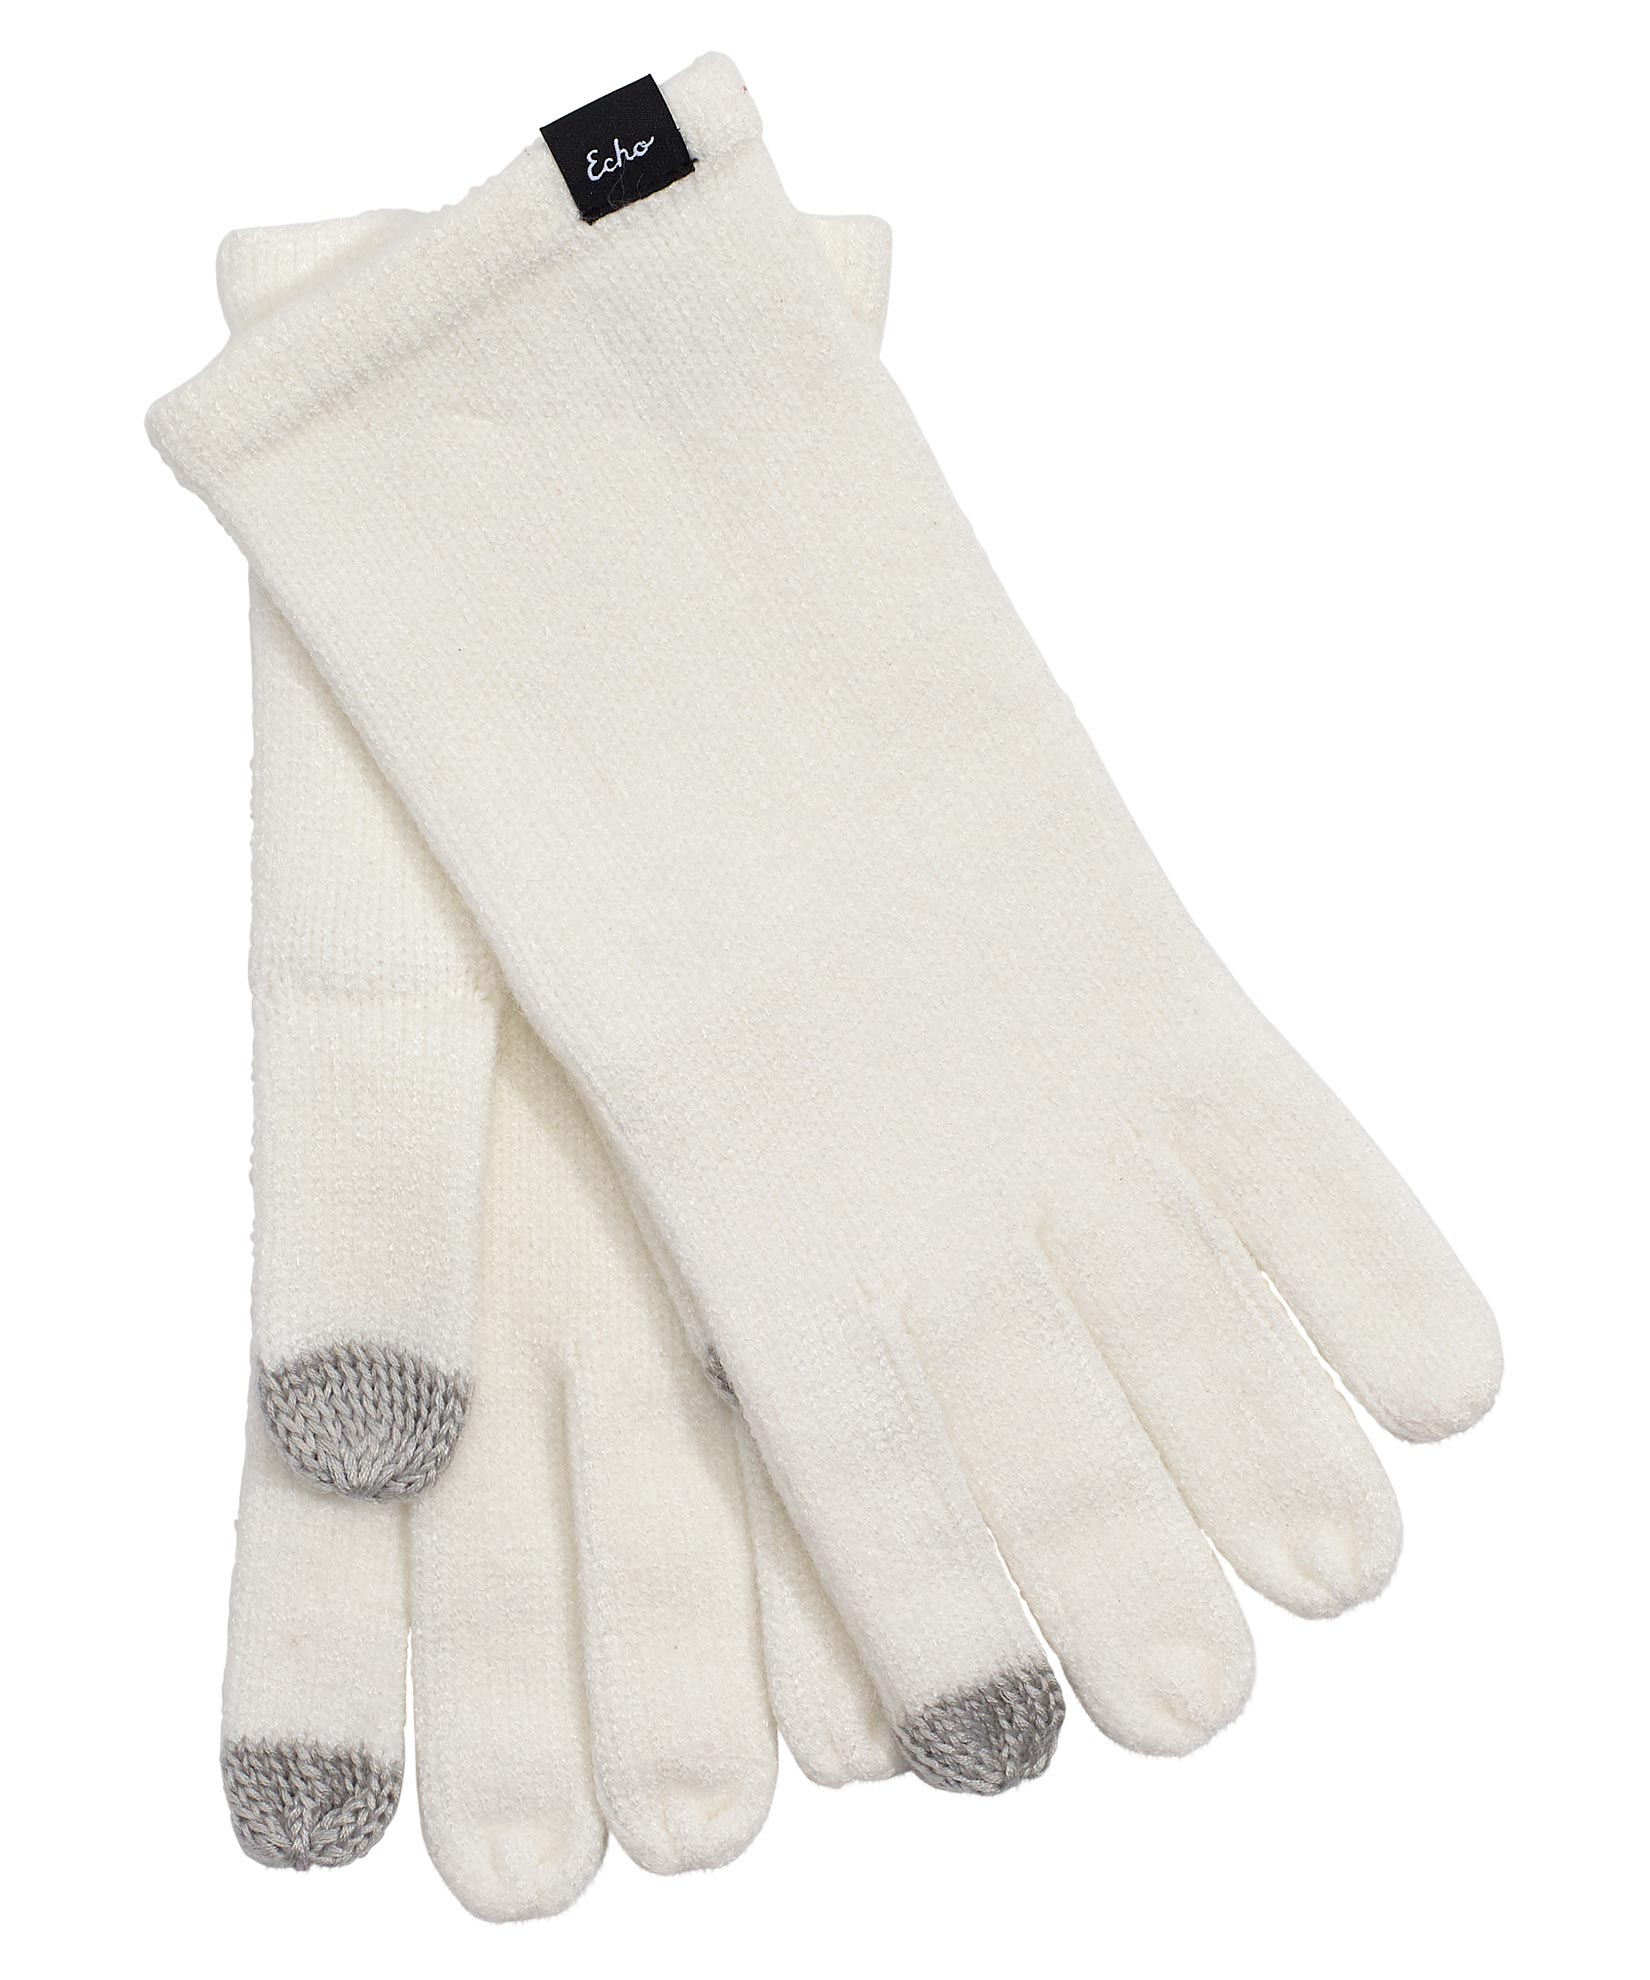 Echo Ivory - Echo Knit Touch Glove